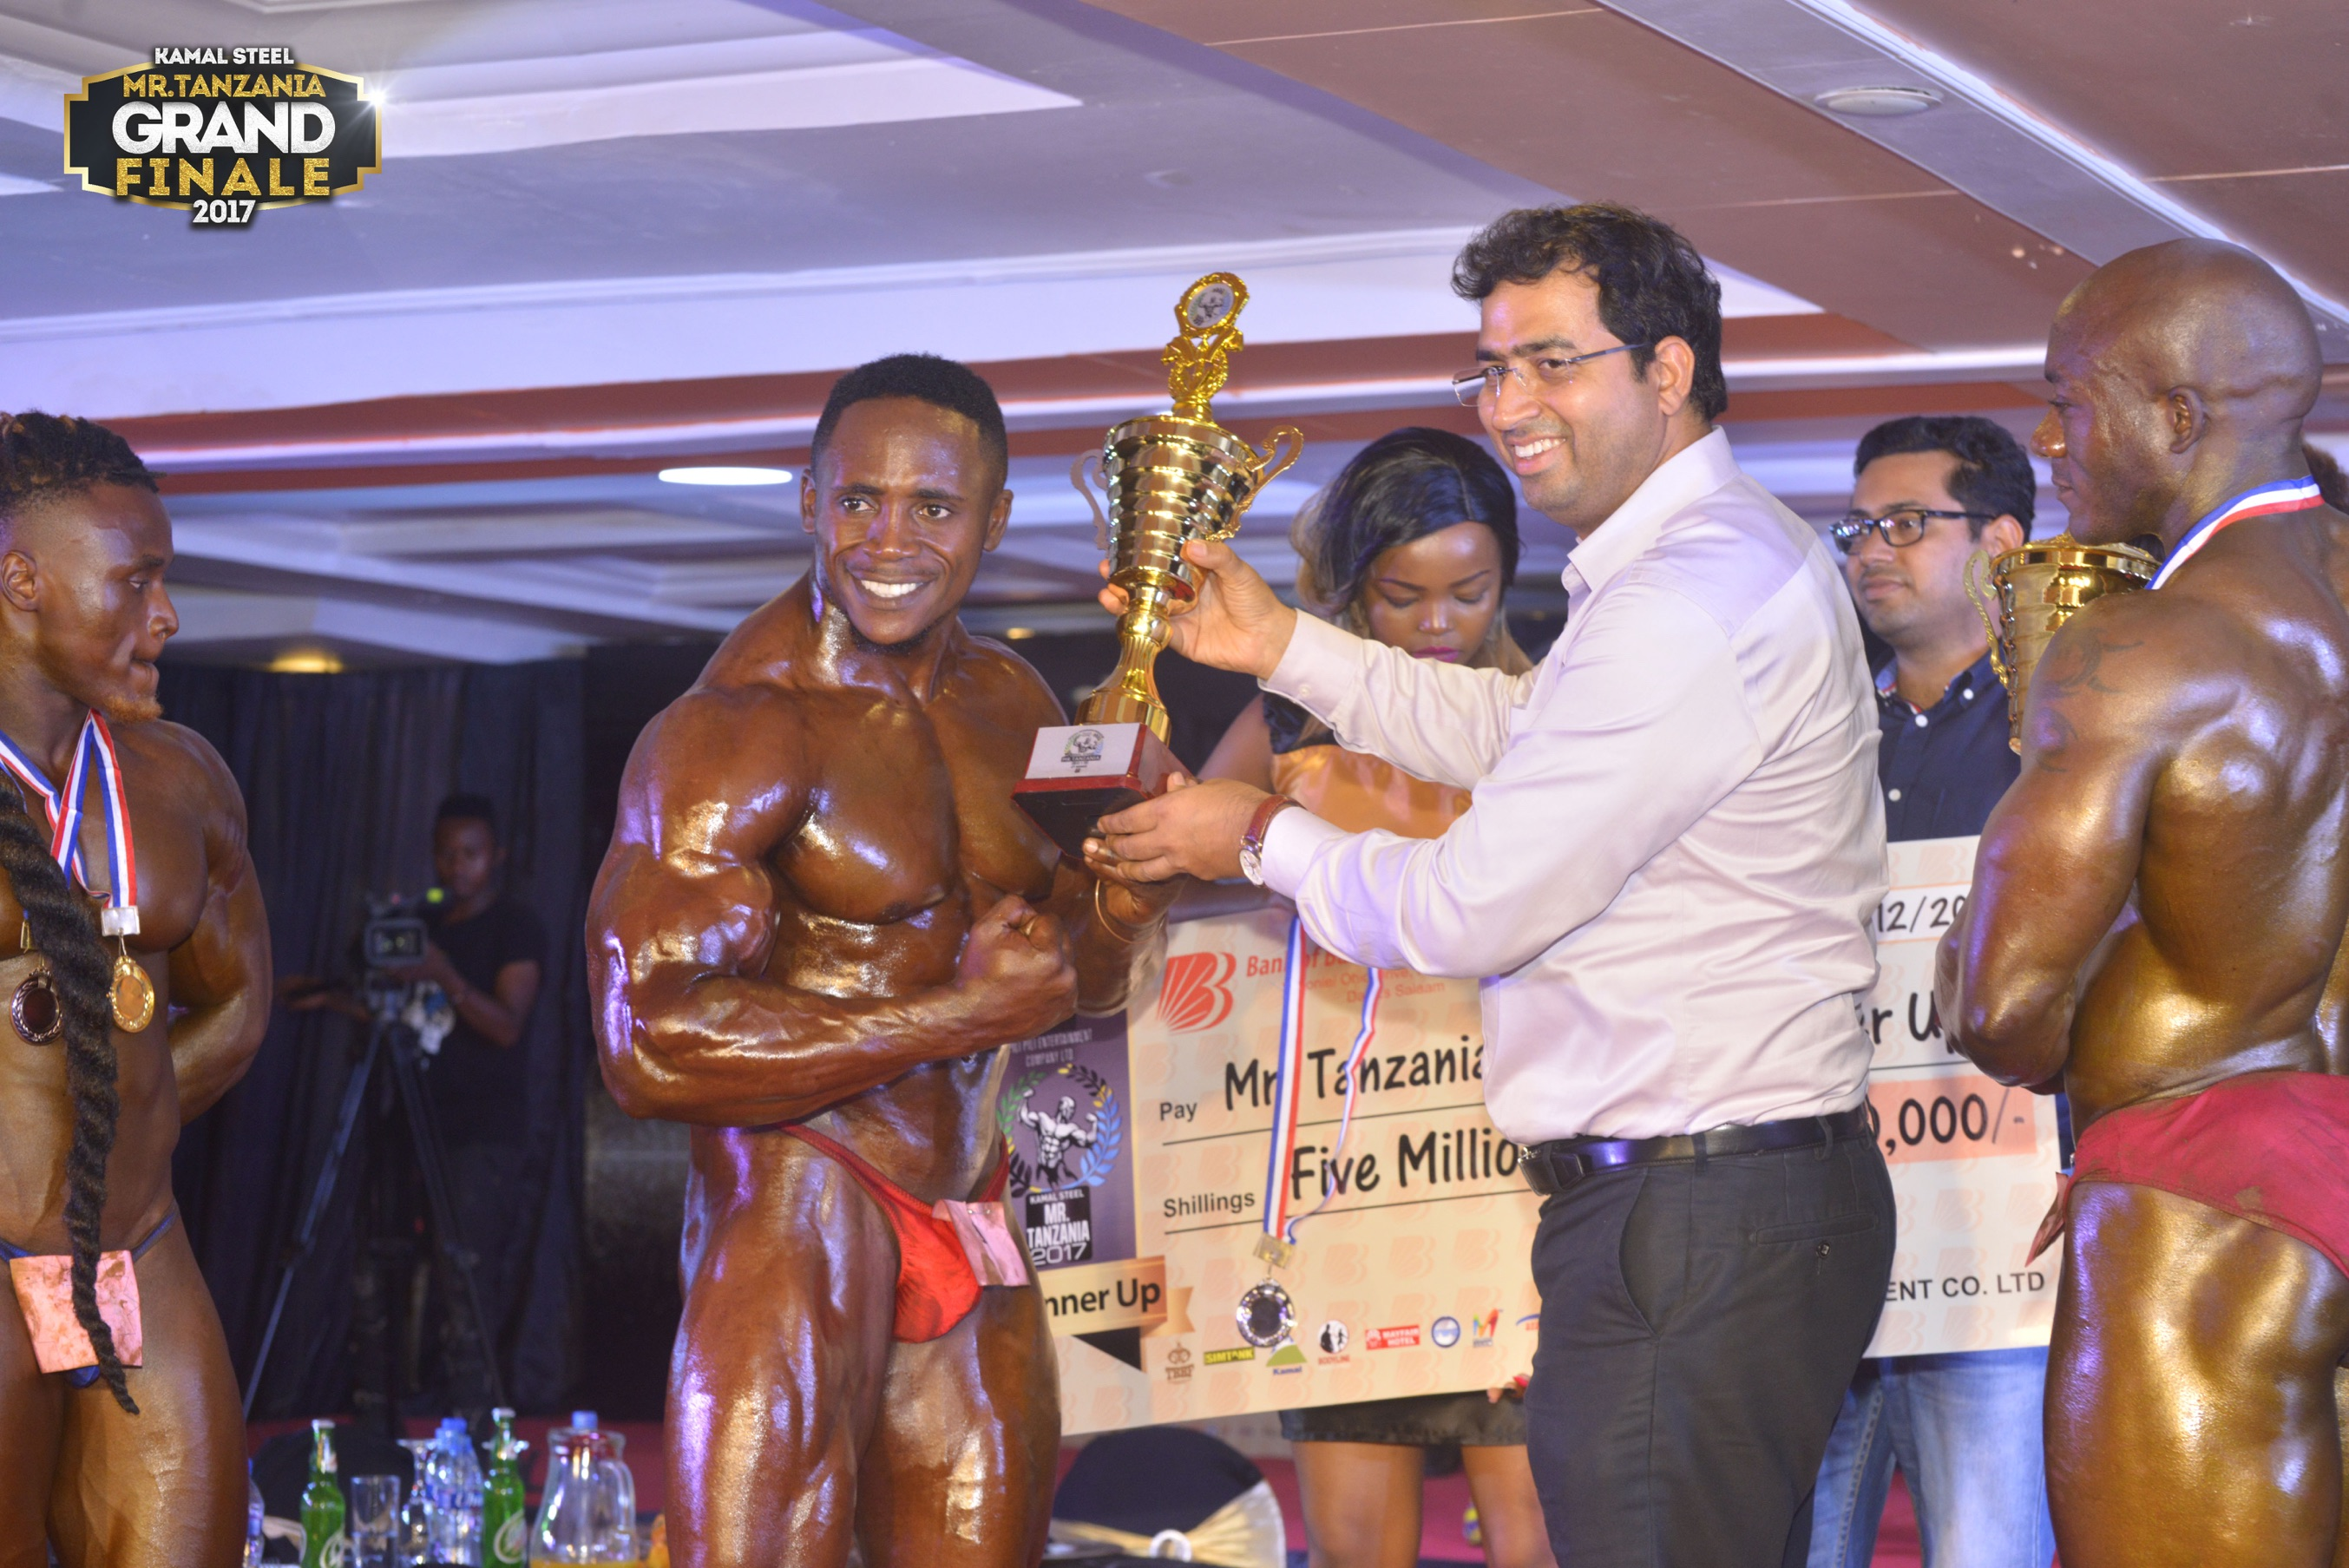 mr-tanzania-1st-runner-up